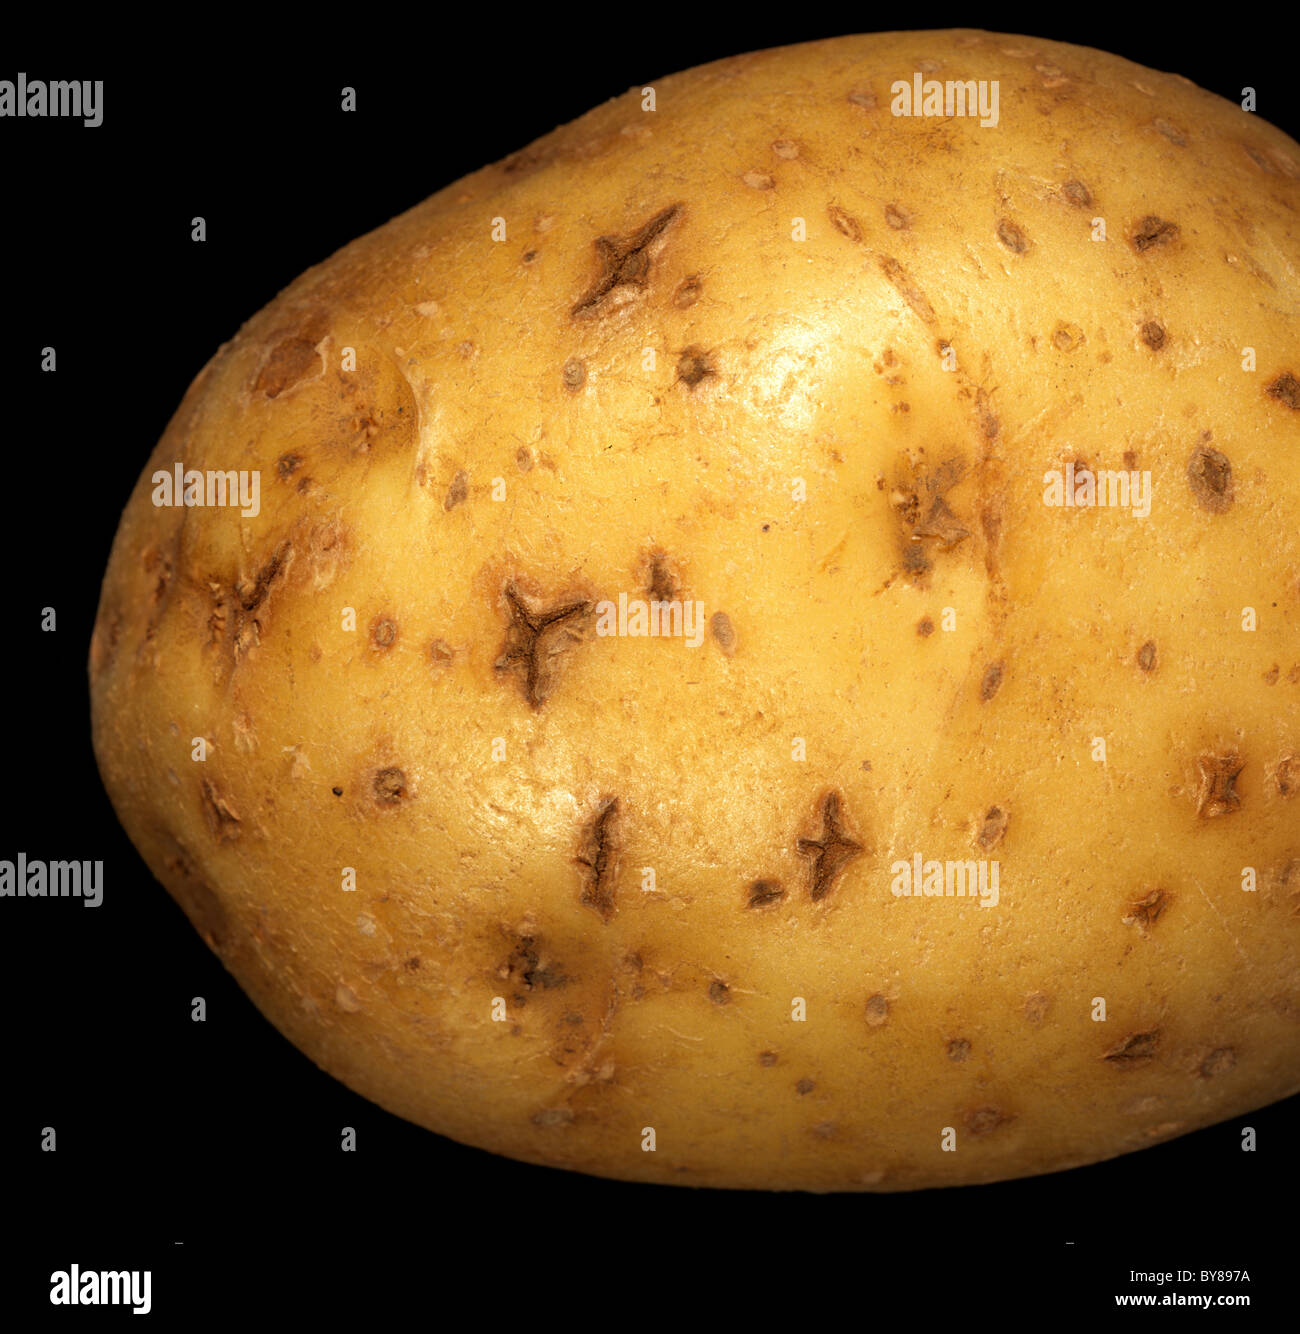 Star crack lesions on skin surface of a potato tuber - Stock Image